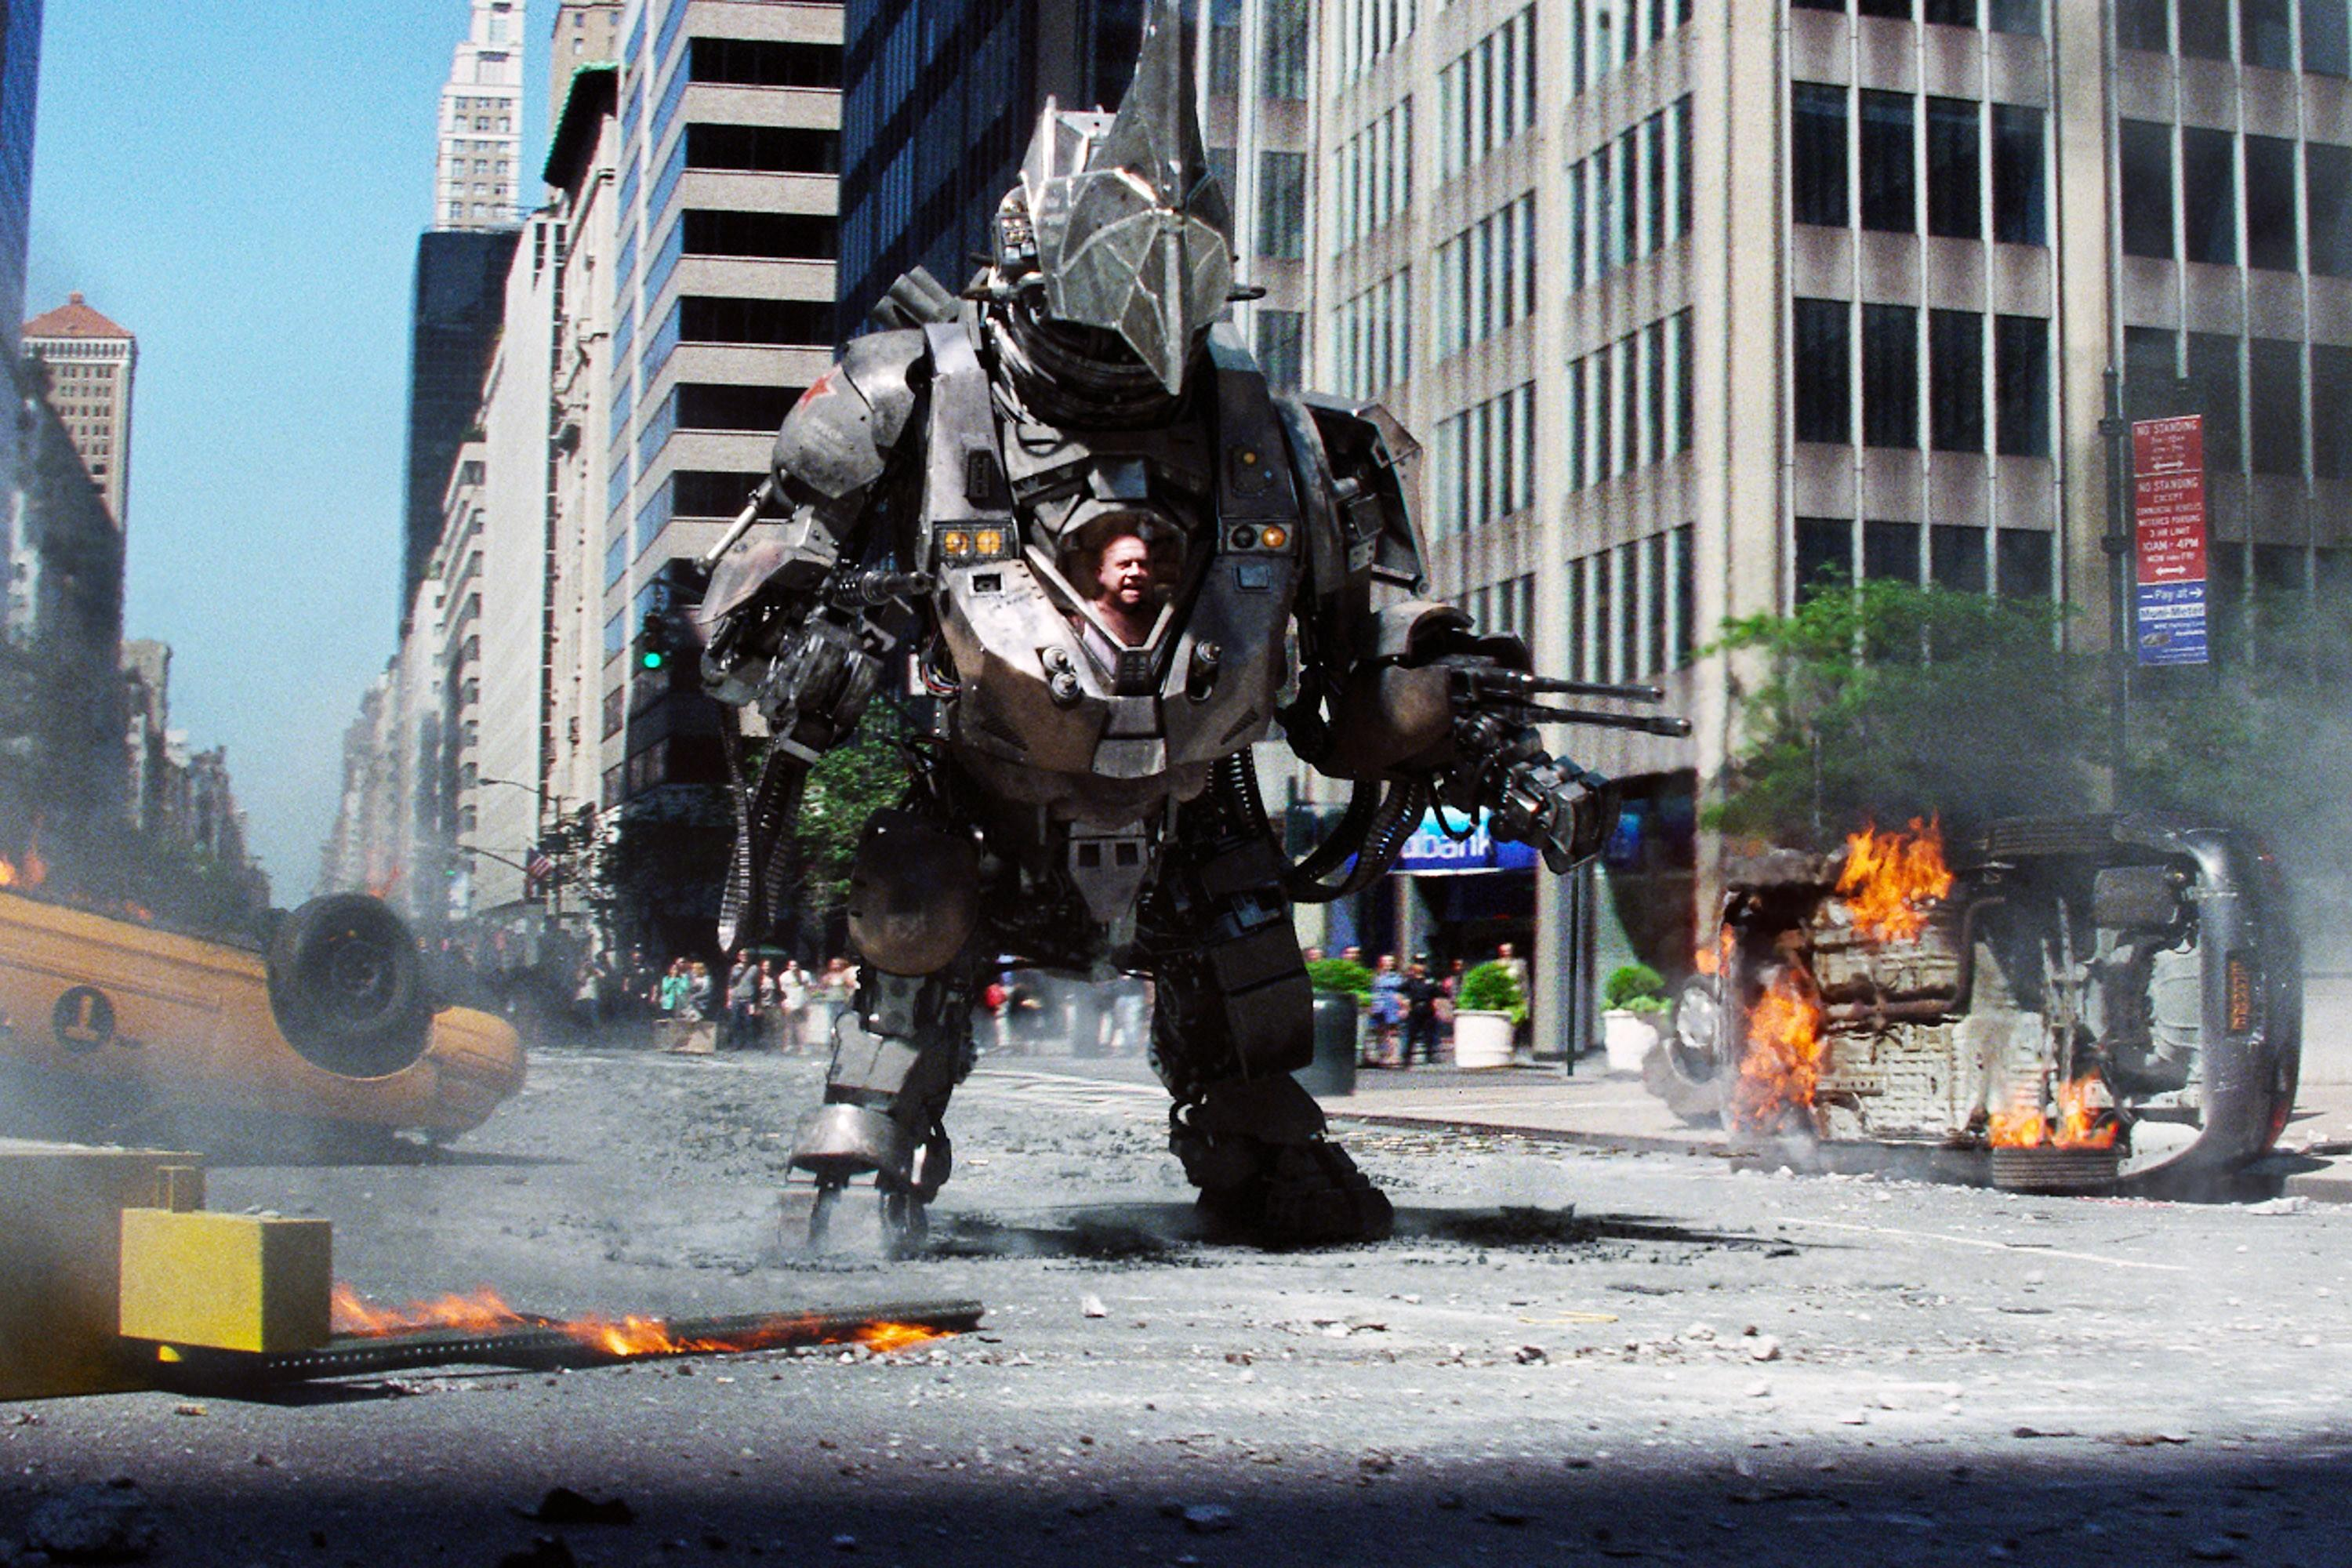 Mech Suits in the Movies | Fandango